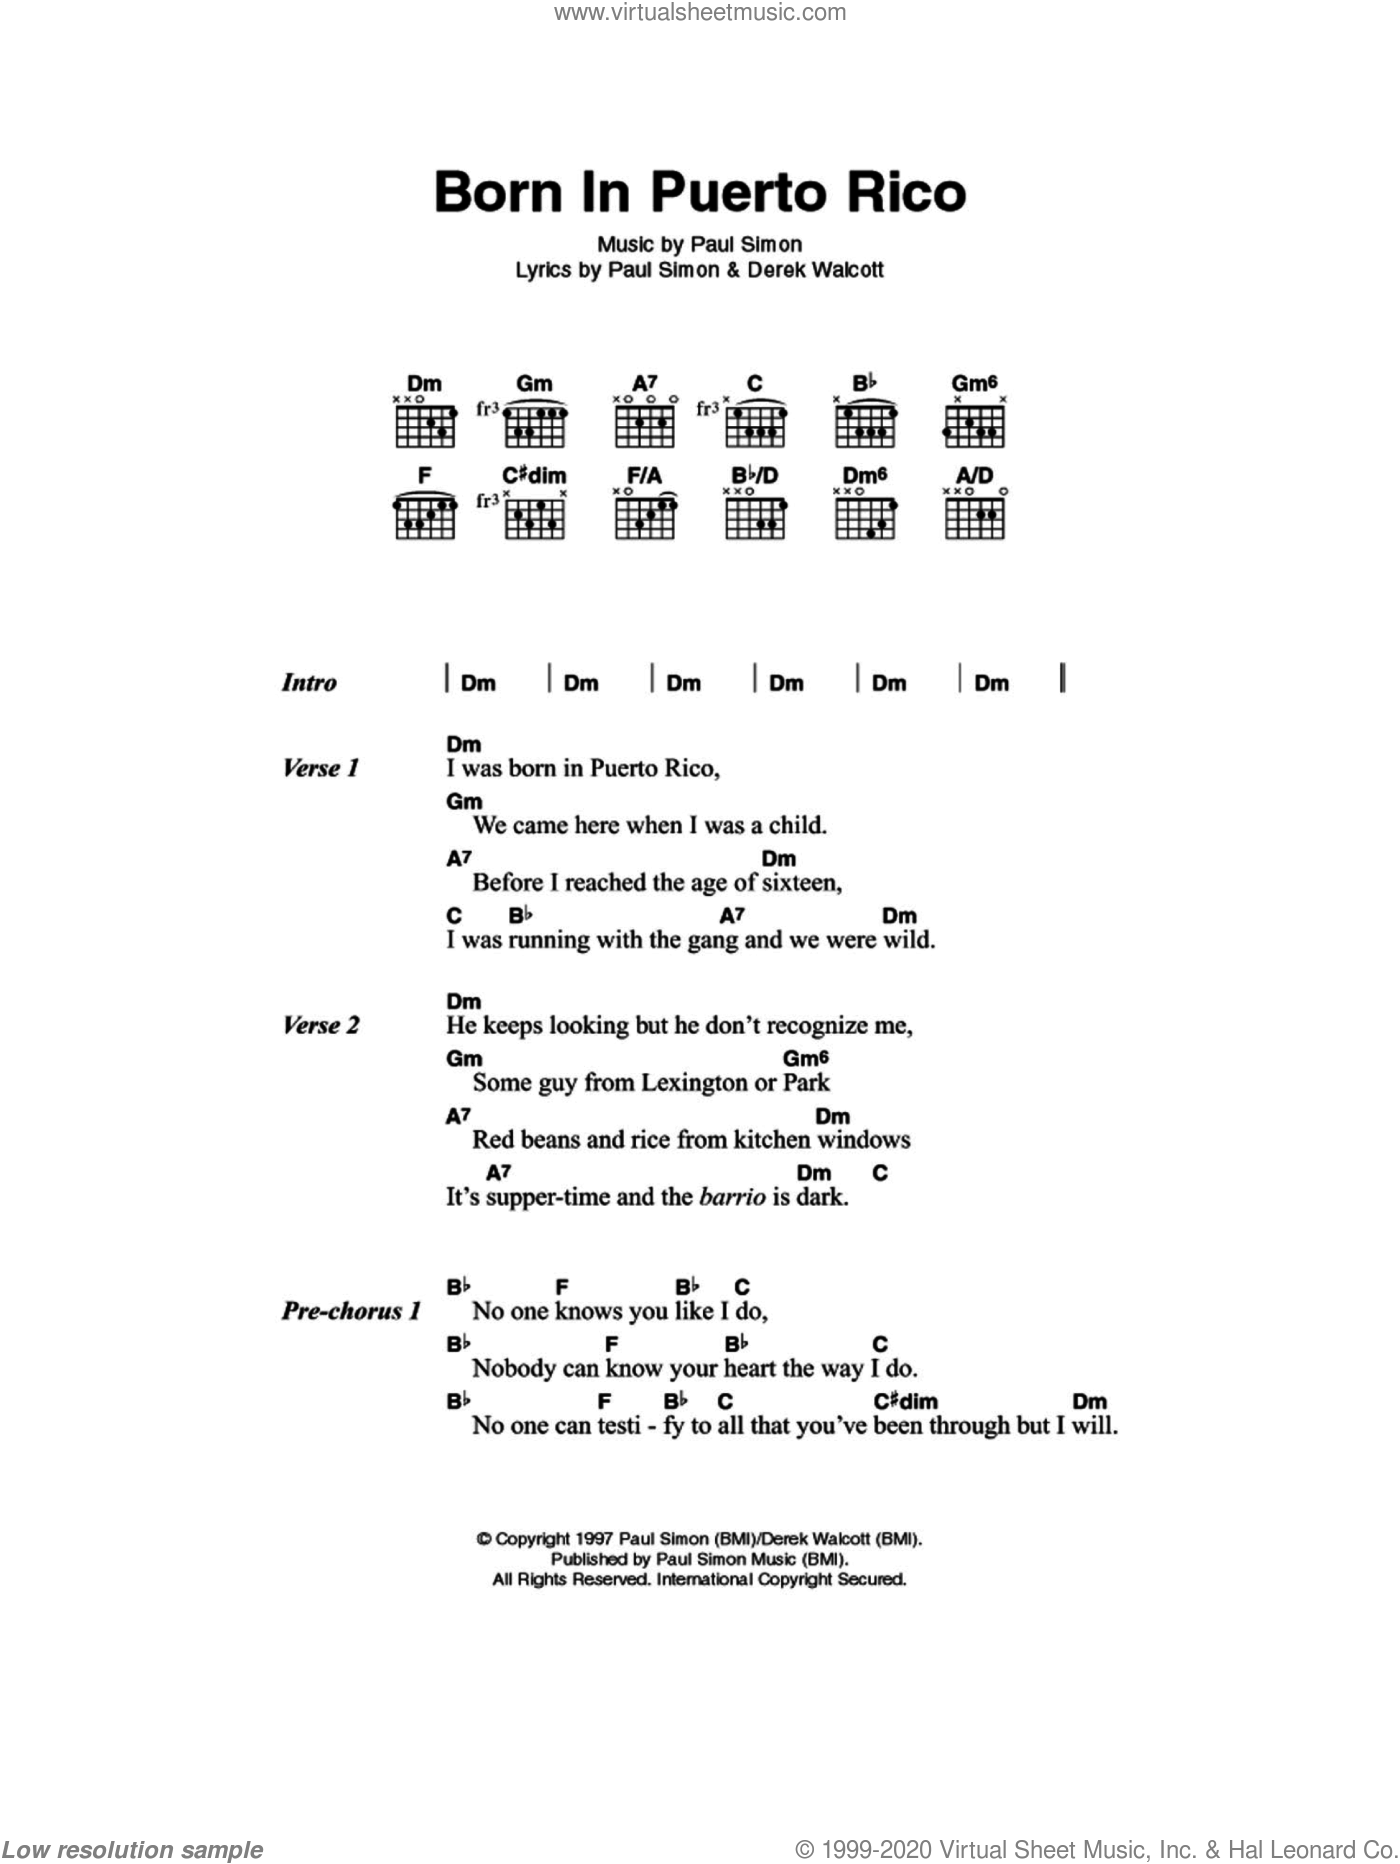 Simon - Born In Puerto Rico sheet music for guitar (chords) [PDF]